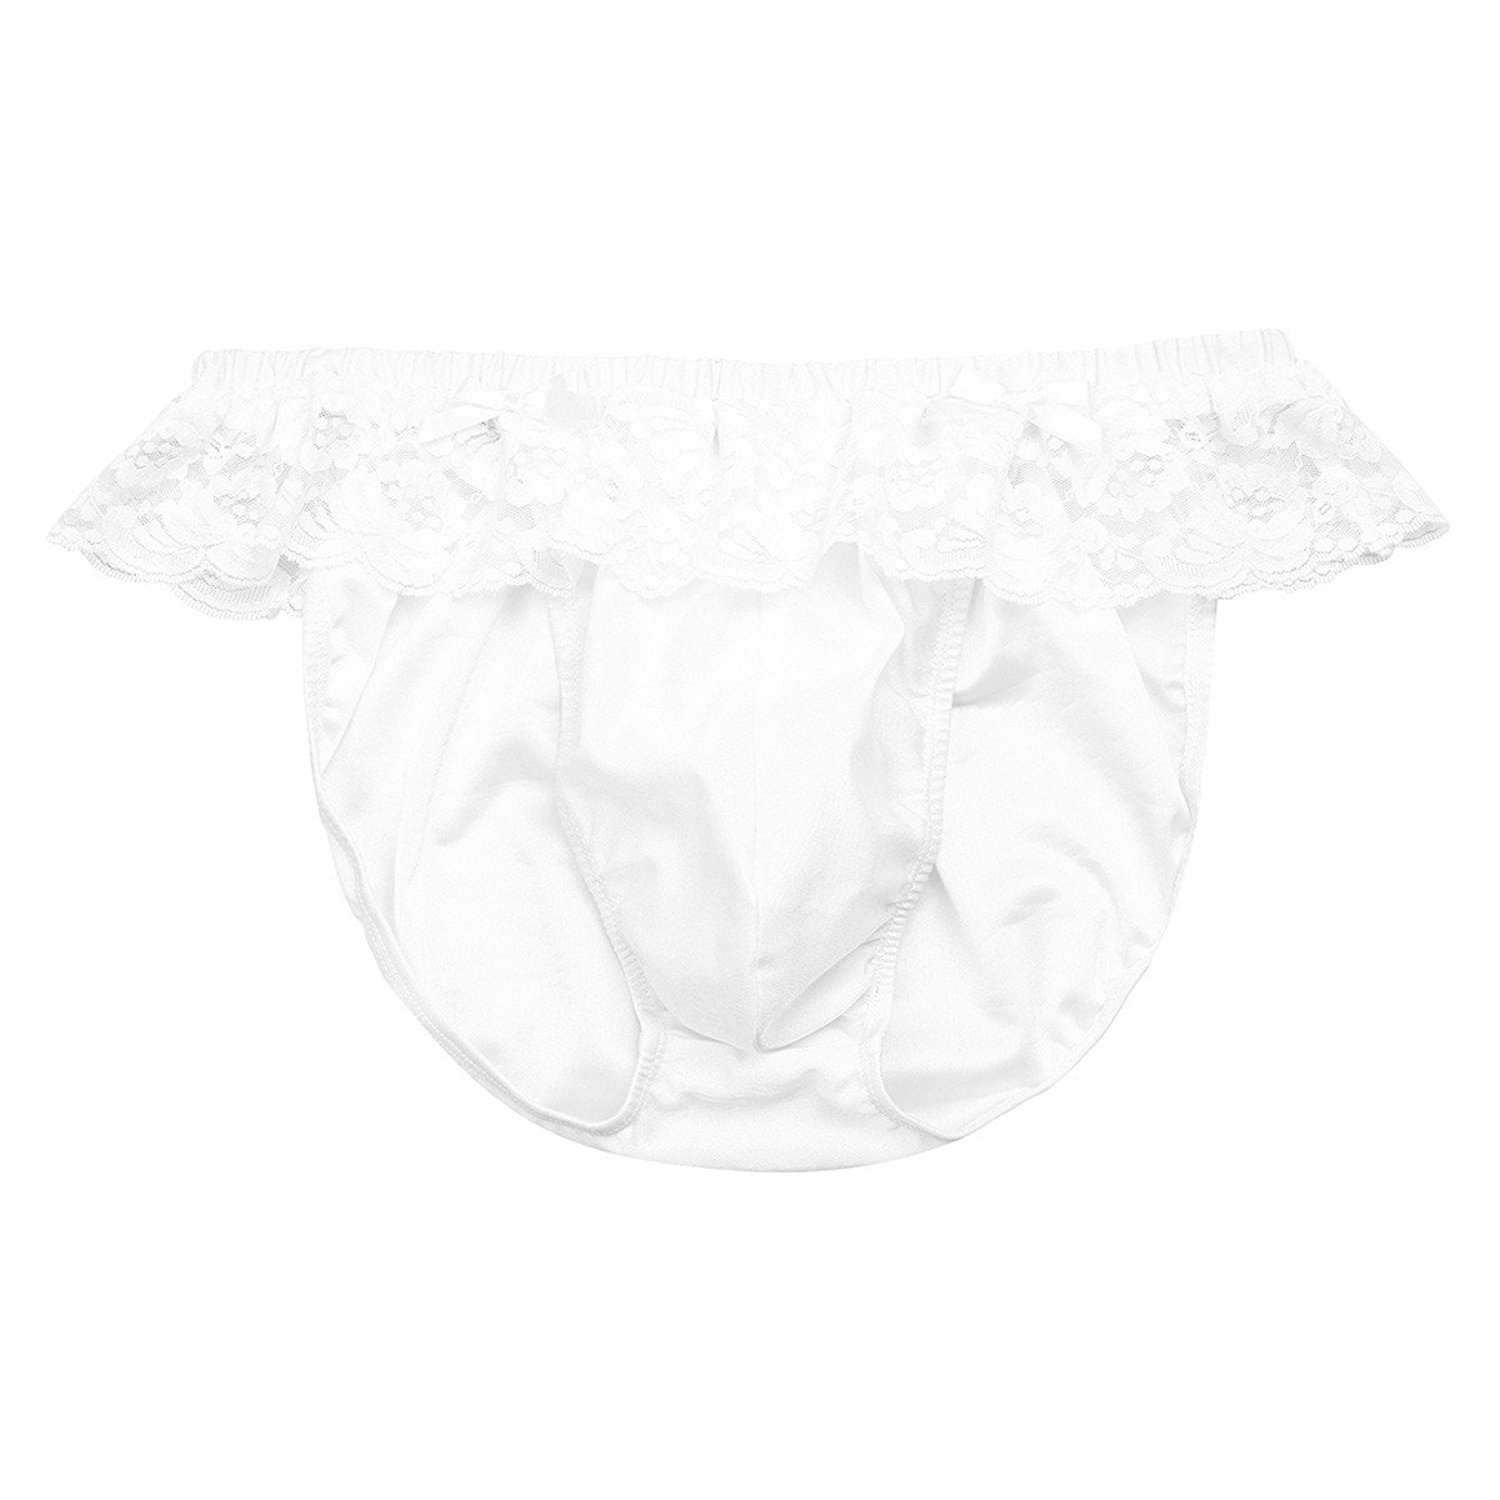 46a3601eb7e0 Get Quotations · YiZYiF Mens' Frilly Lace Sissy Pouch Bikini Panties Ruffled  Trimming Underwear